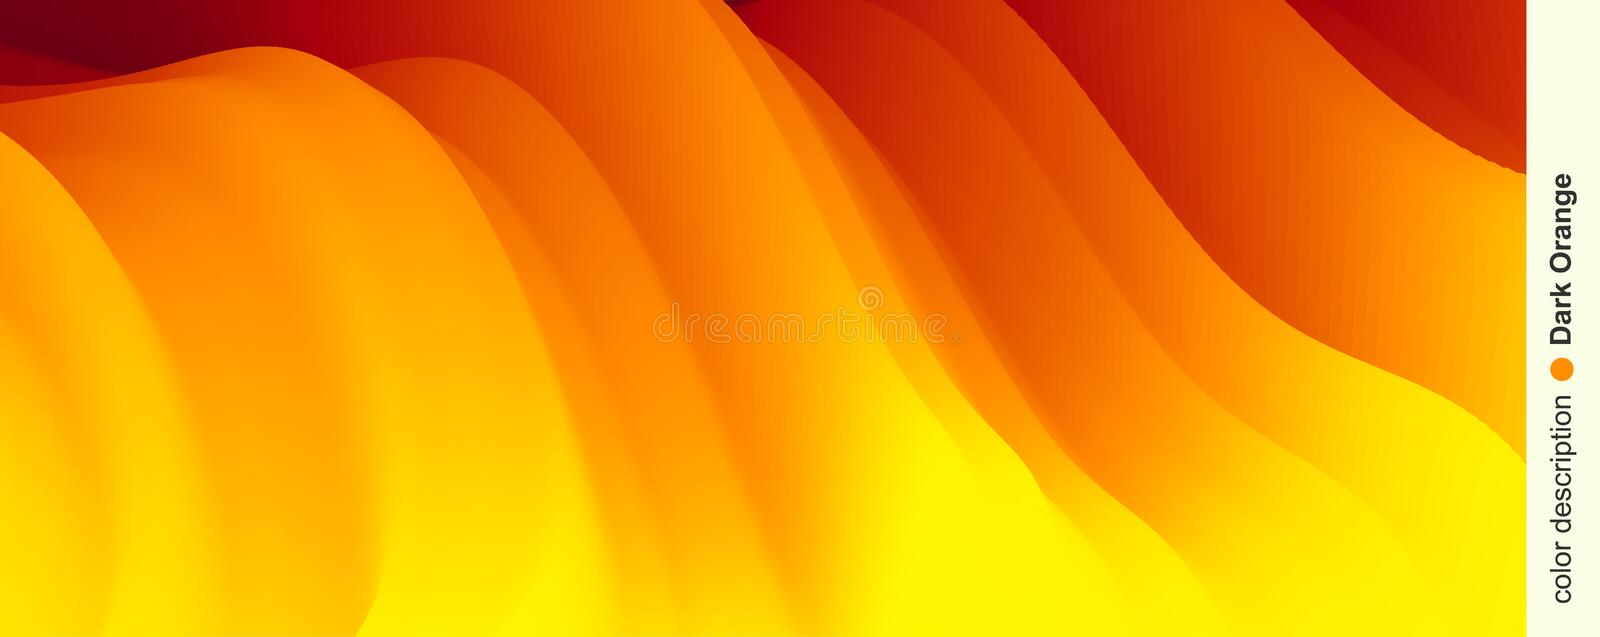 Abstract background with dynamic effect. Motion vector Illustration..Trendy gradients. Can be used for advertising, marketing, vector illustration